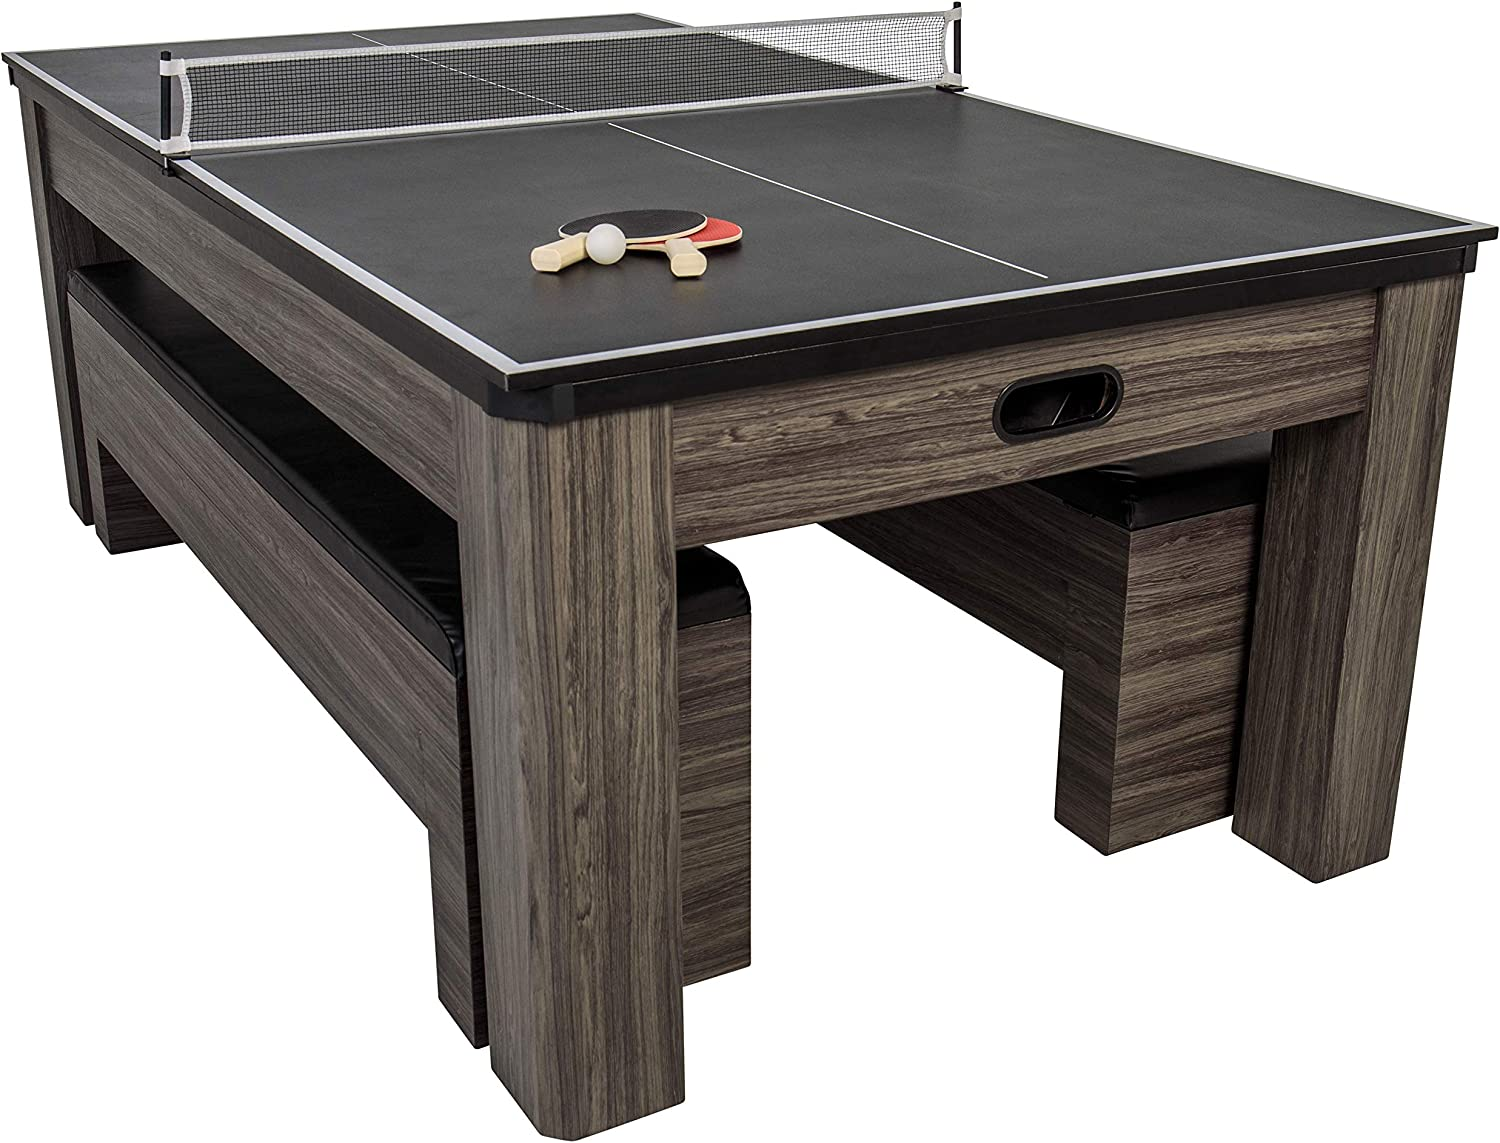 Atomic Northport 3 In 1 Dining Table With Air Powered Hockey And Table Tennis Black Sports Outdoors